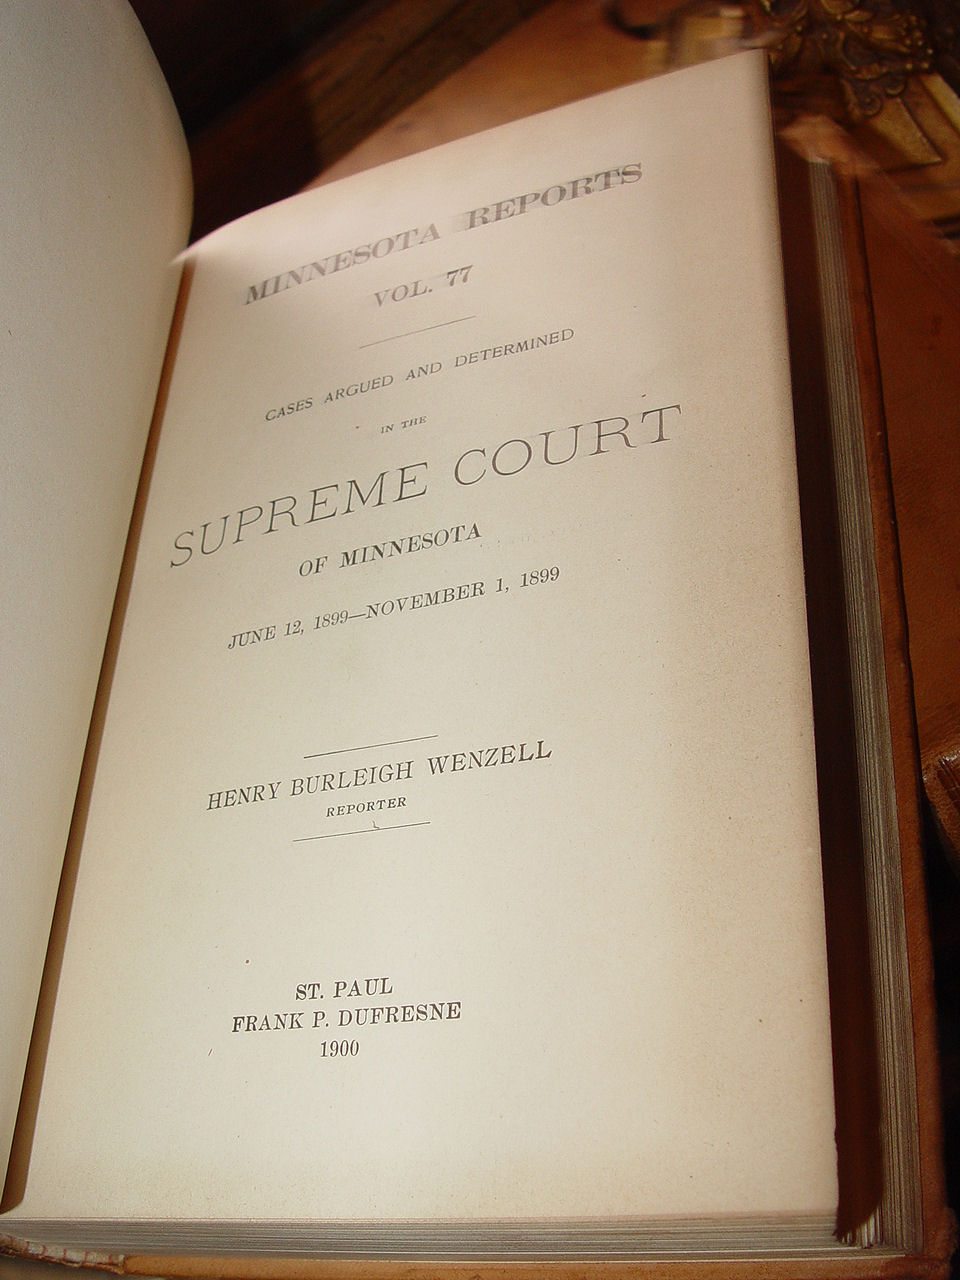 Minnesota                                         Reports (Volume 77) Orig.                                         Leather Hardcover 1900 – Cases                                         from June 1899 - Nov. 1899 by                                         Minnesota. Supreme Court